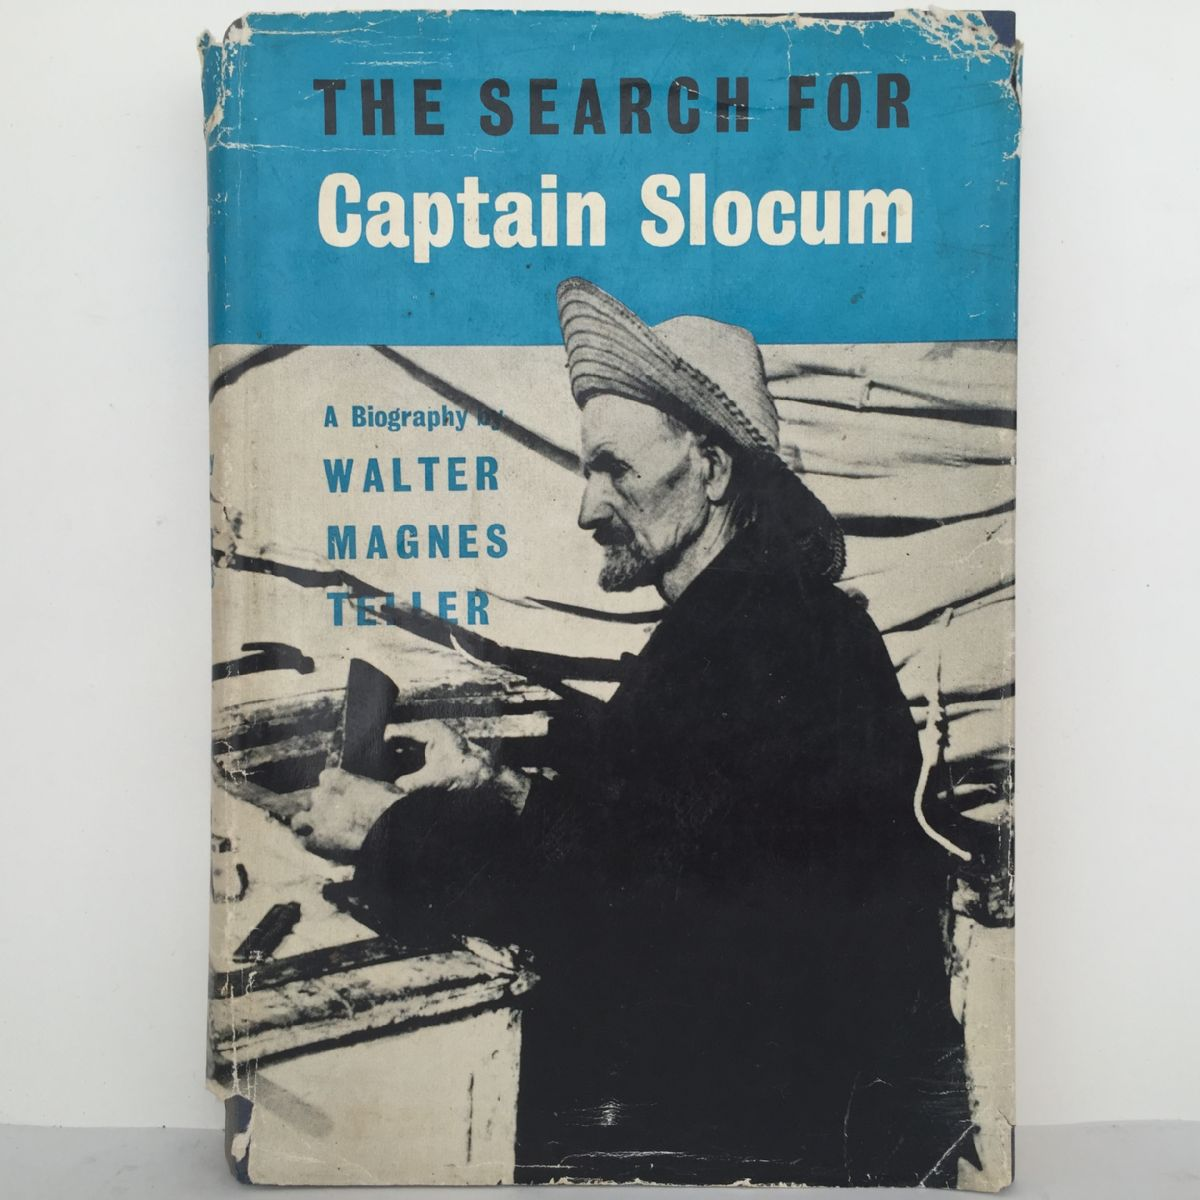 The Search for Captain Slocum